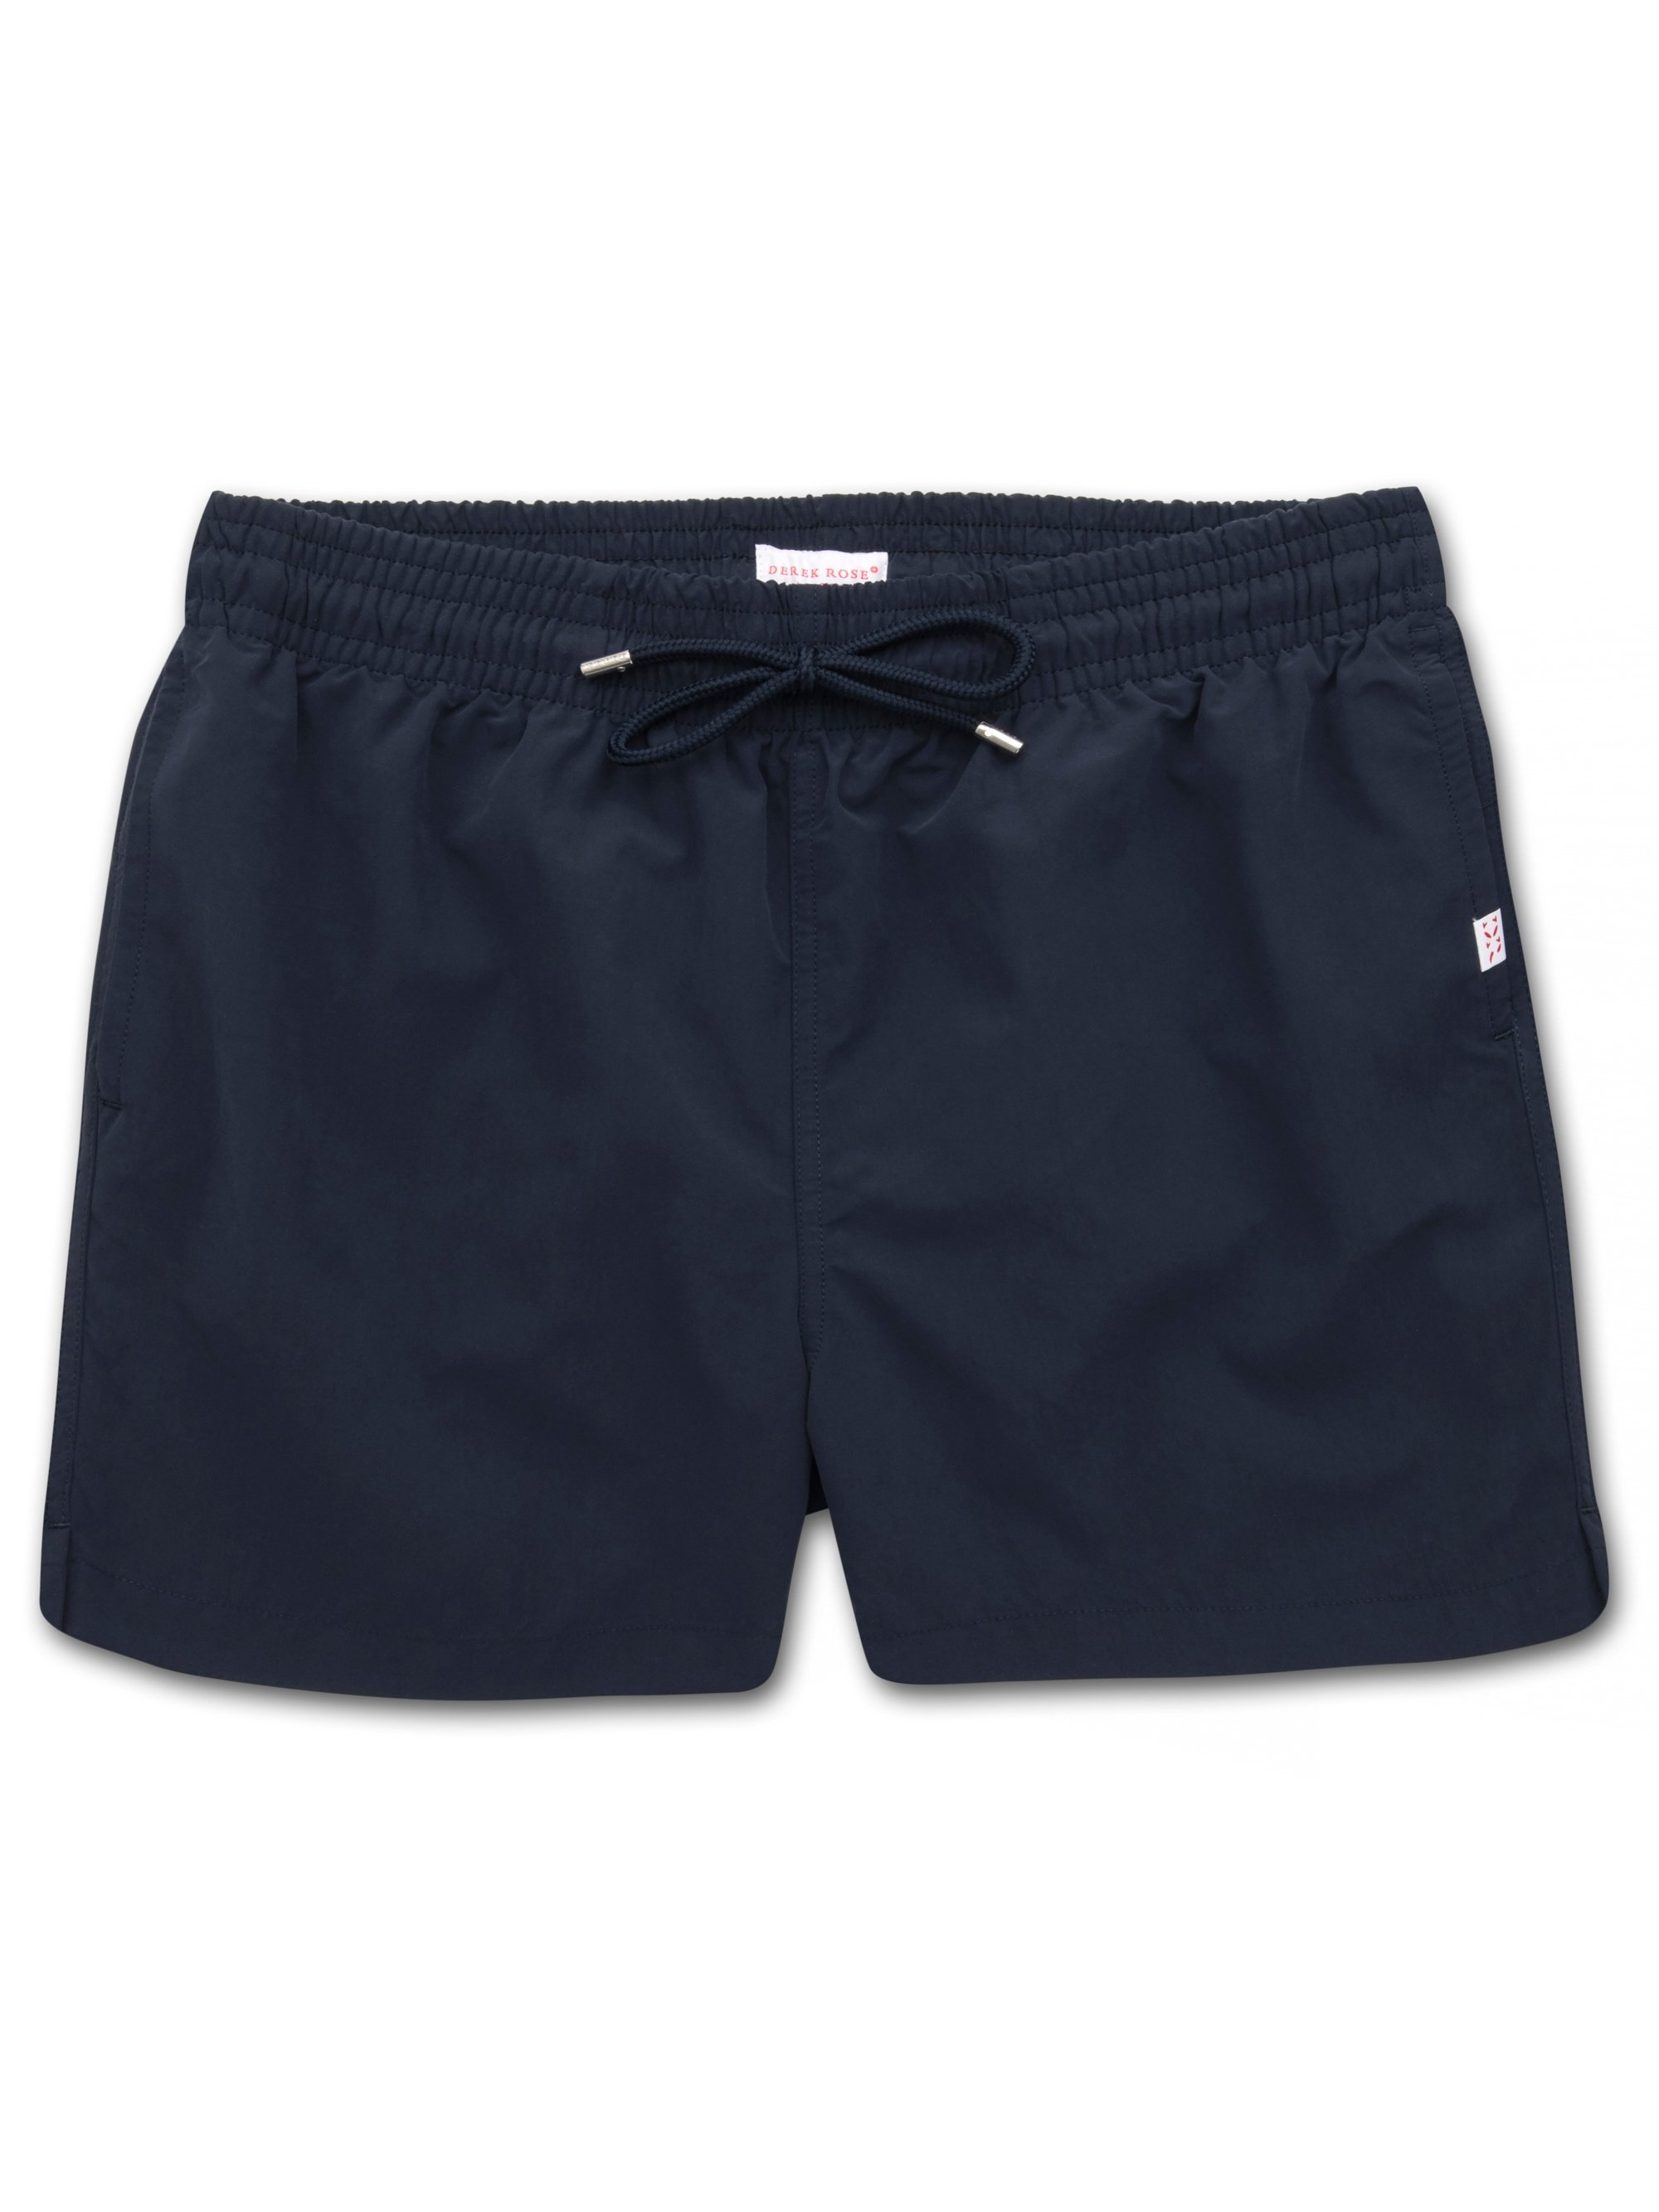 Men's Short Classic Fit Swim Shorts Aruba Navy